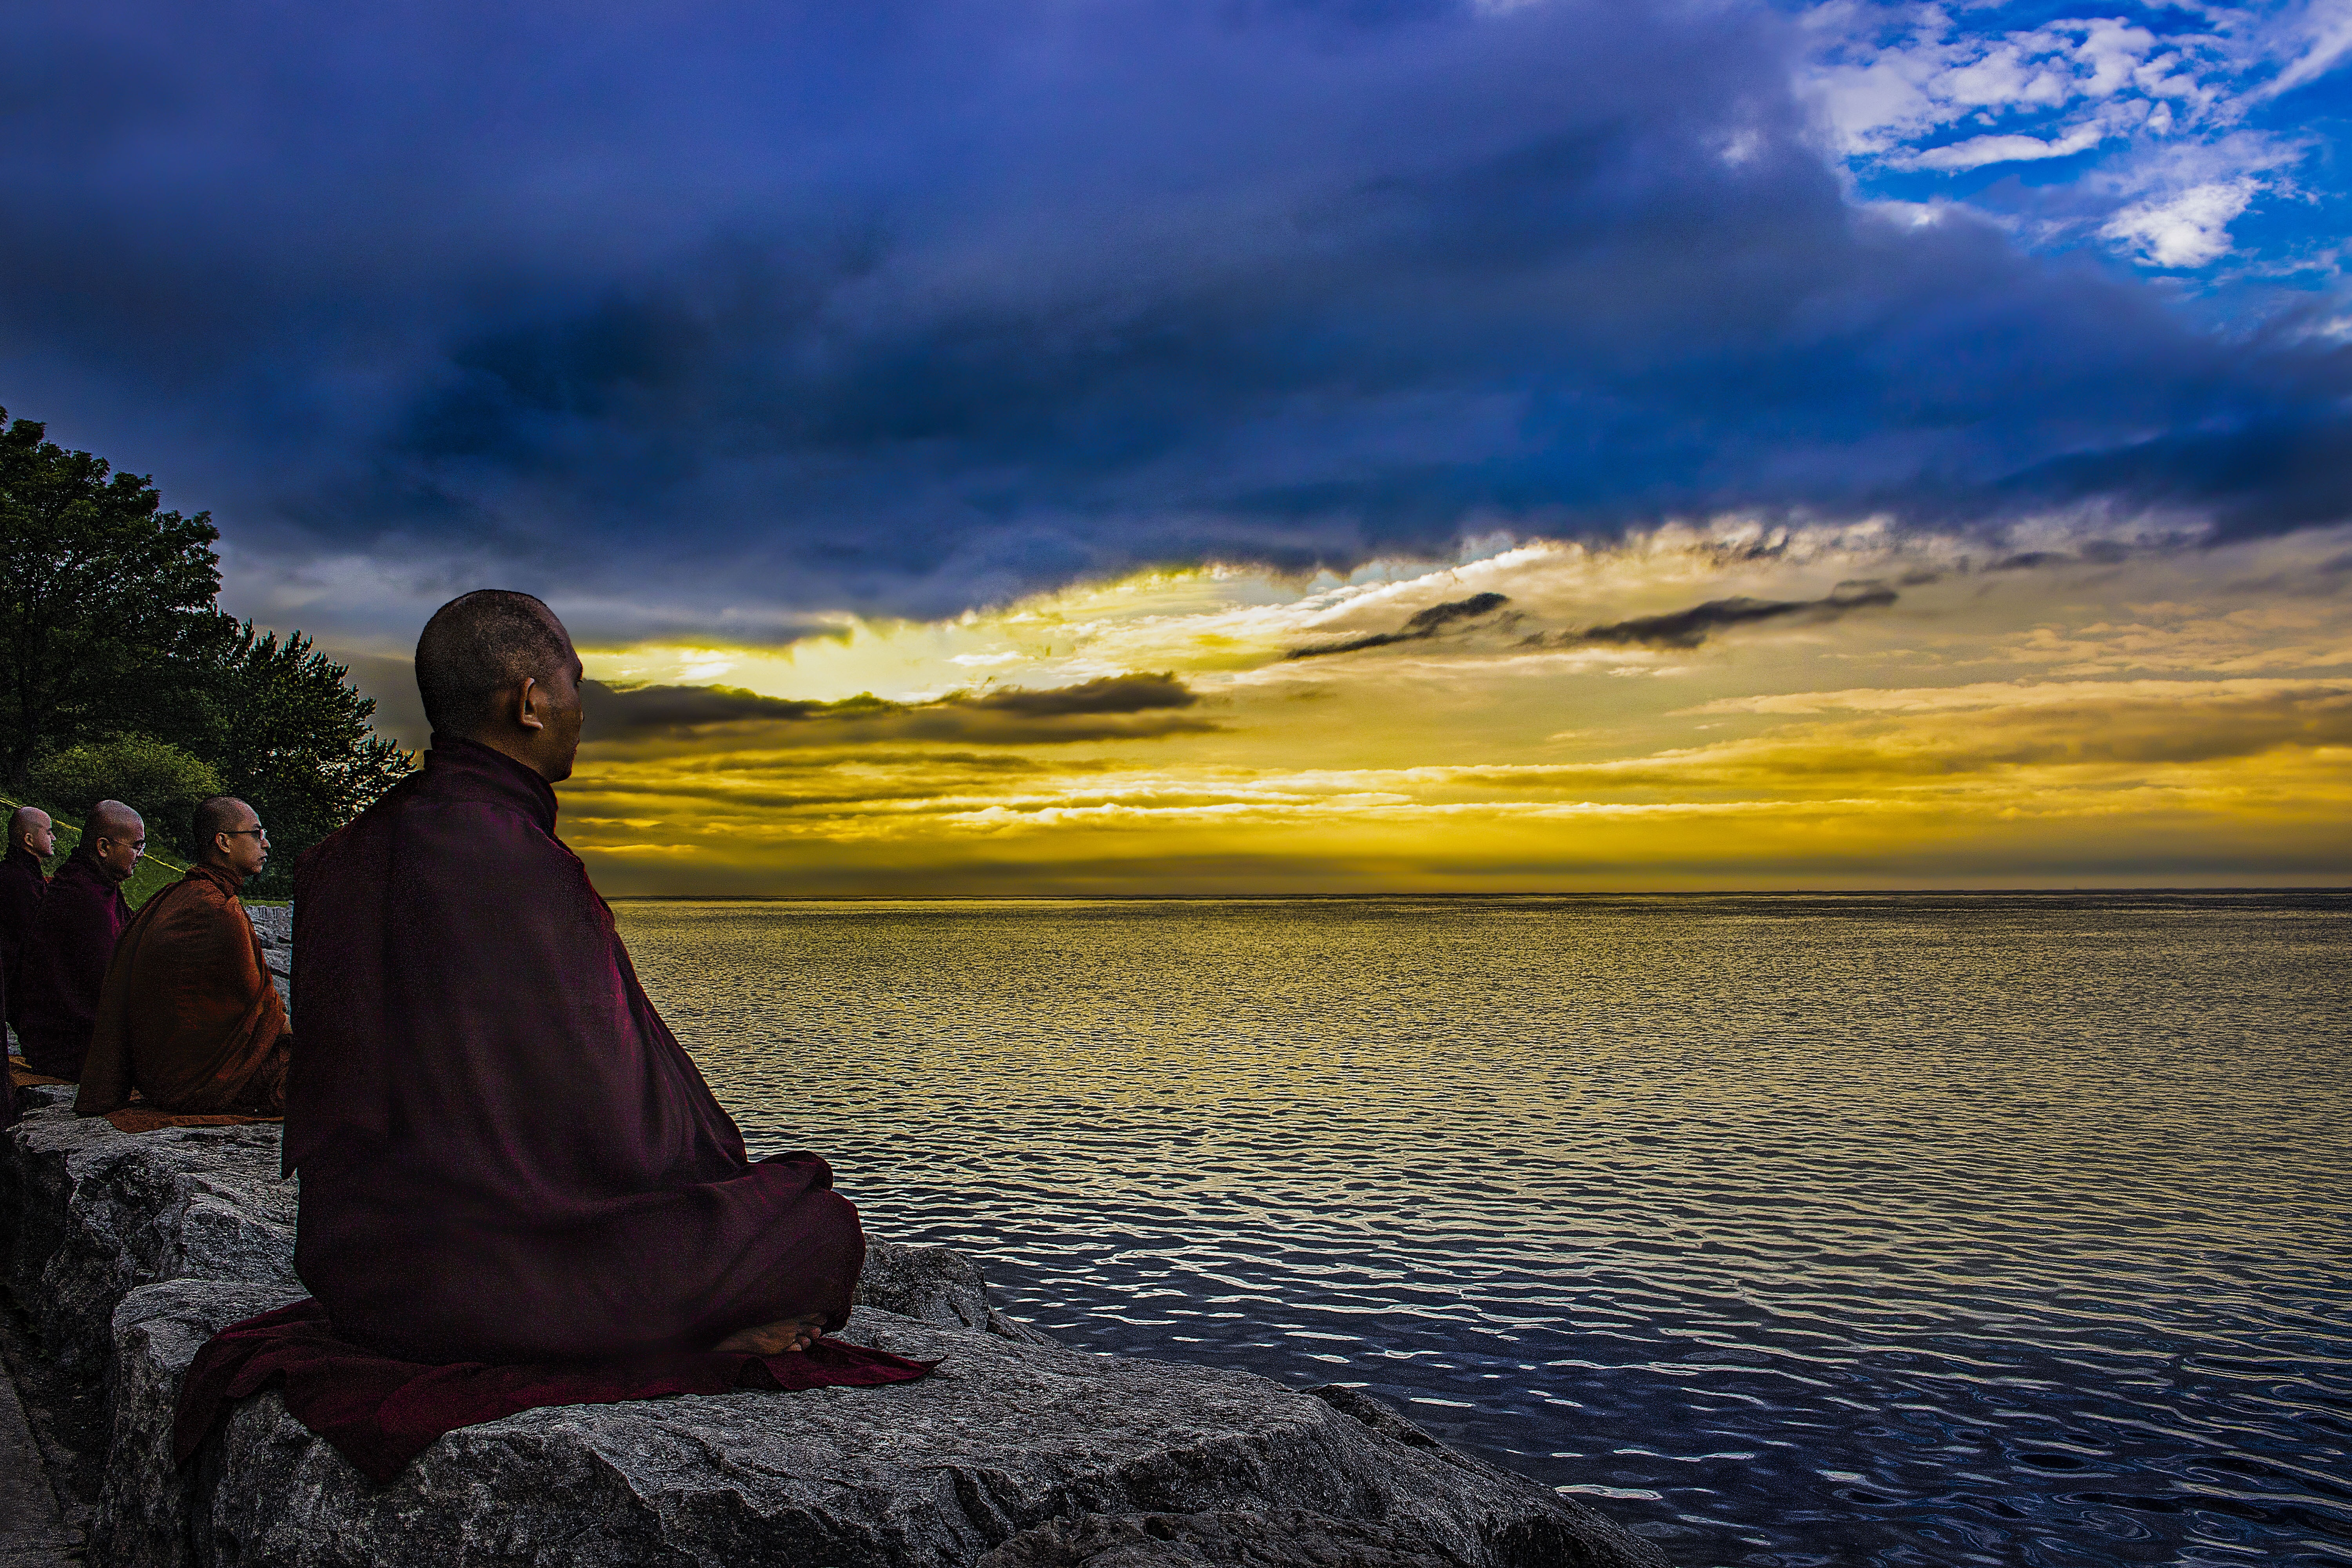 Meditation tips and tricks, personal development through mindfulness, mindful exercise, mindfulness life hacks, mindfulness tips, can meditation help, mindset reset, developing minds, commit to sit, spiritual enlightenment, inner contentment, goal of Buddhism,